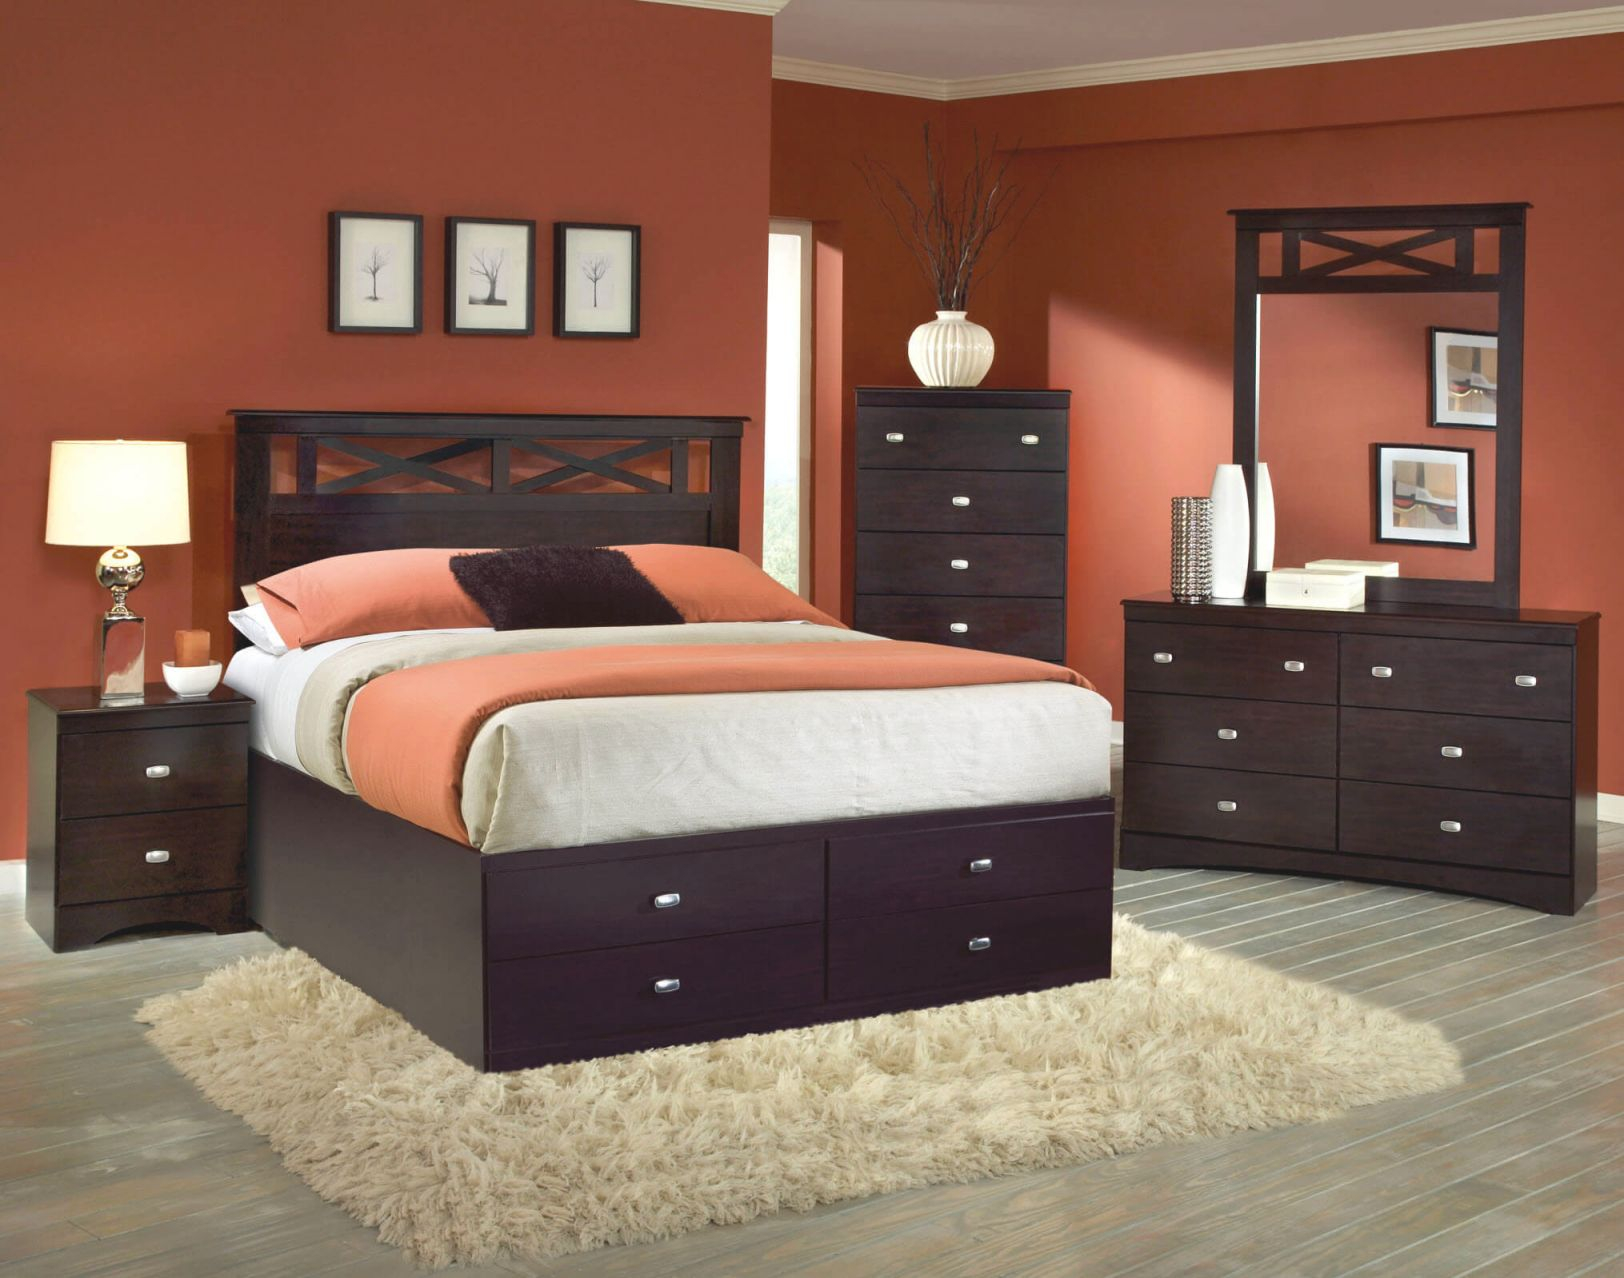 230 Kith Tyler 5 Pc Set With Queen Storage Bed with regard to Beautiful Bedroom Set Queen